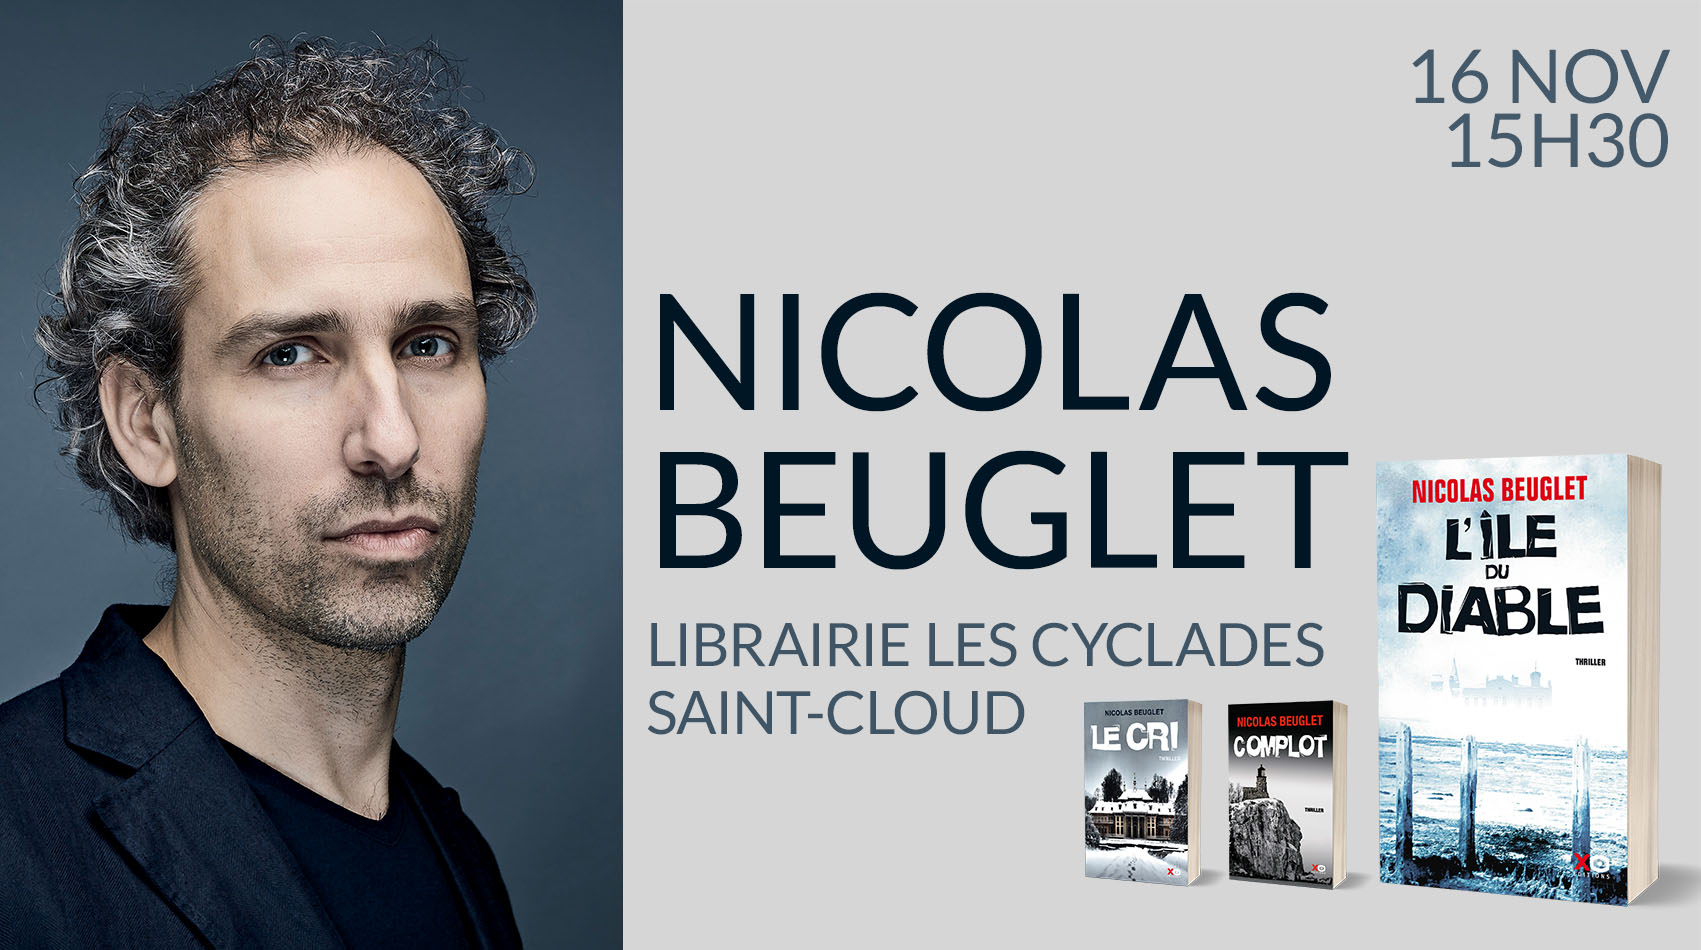 SIGNATURE NICOLAS BEUGLET À SAINT-CLOUD